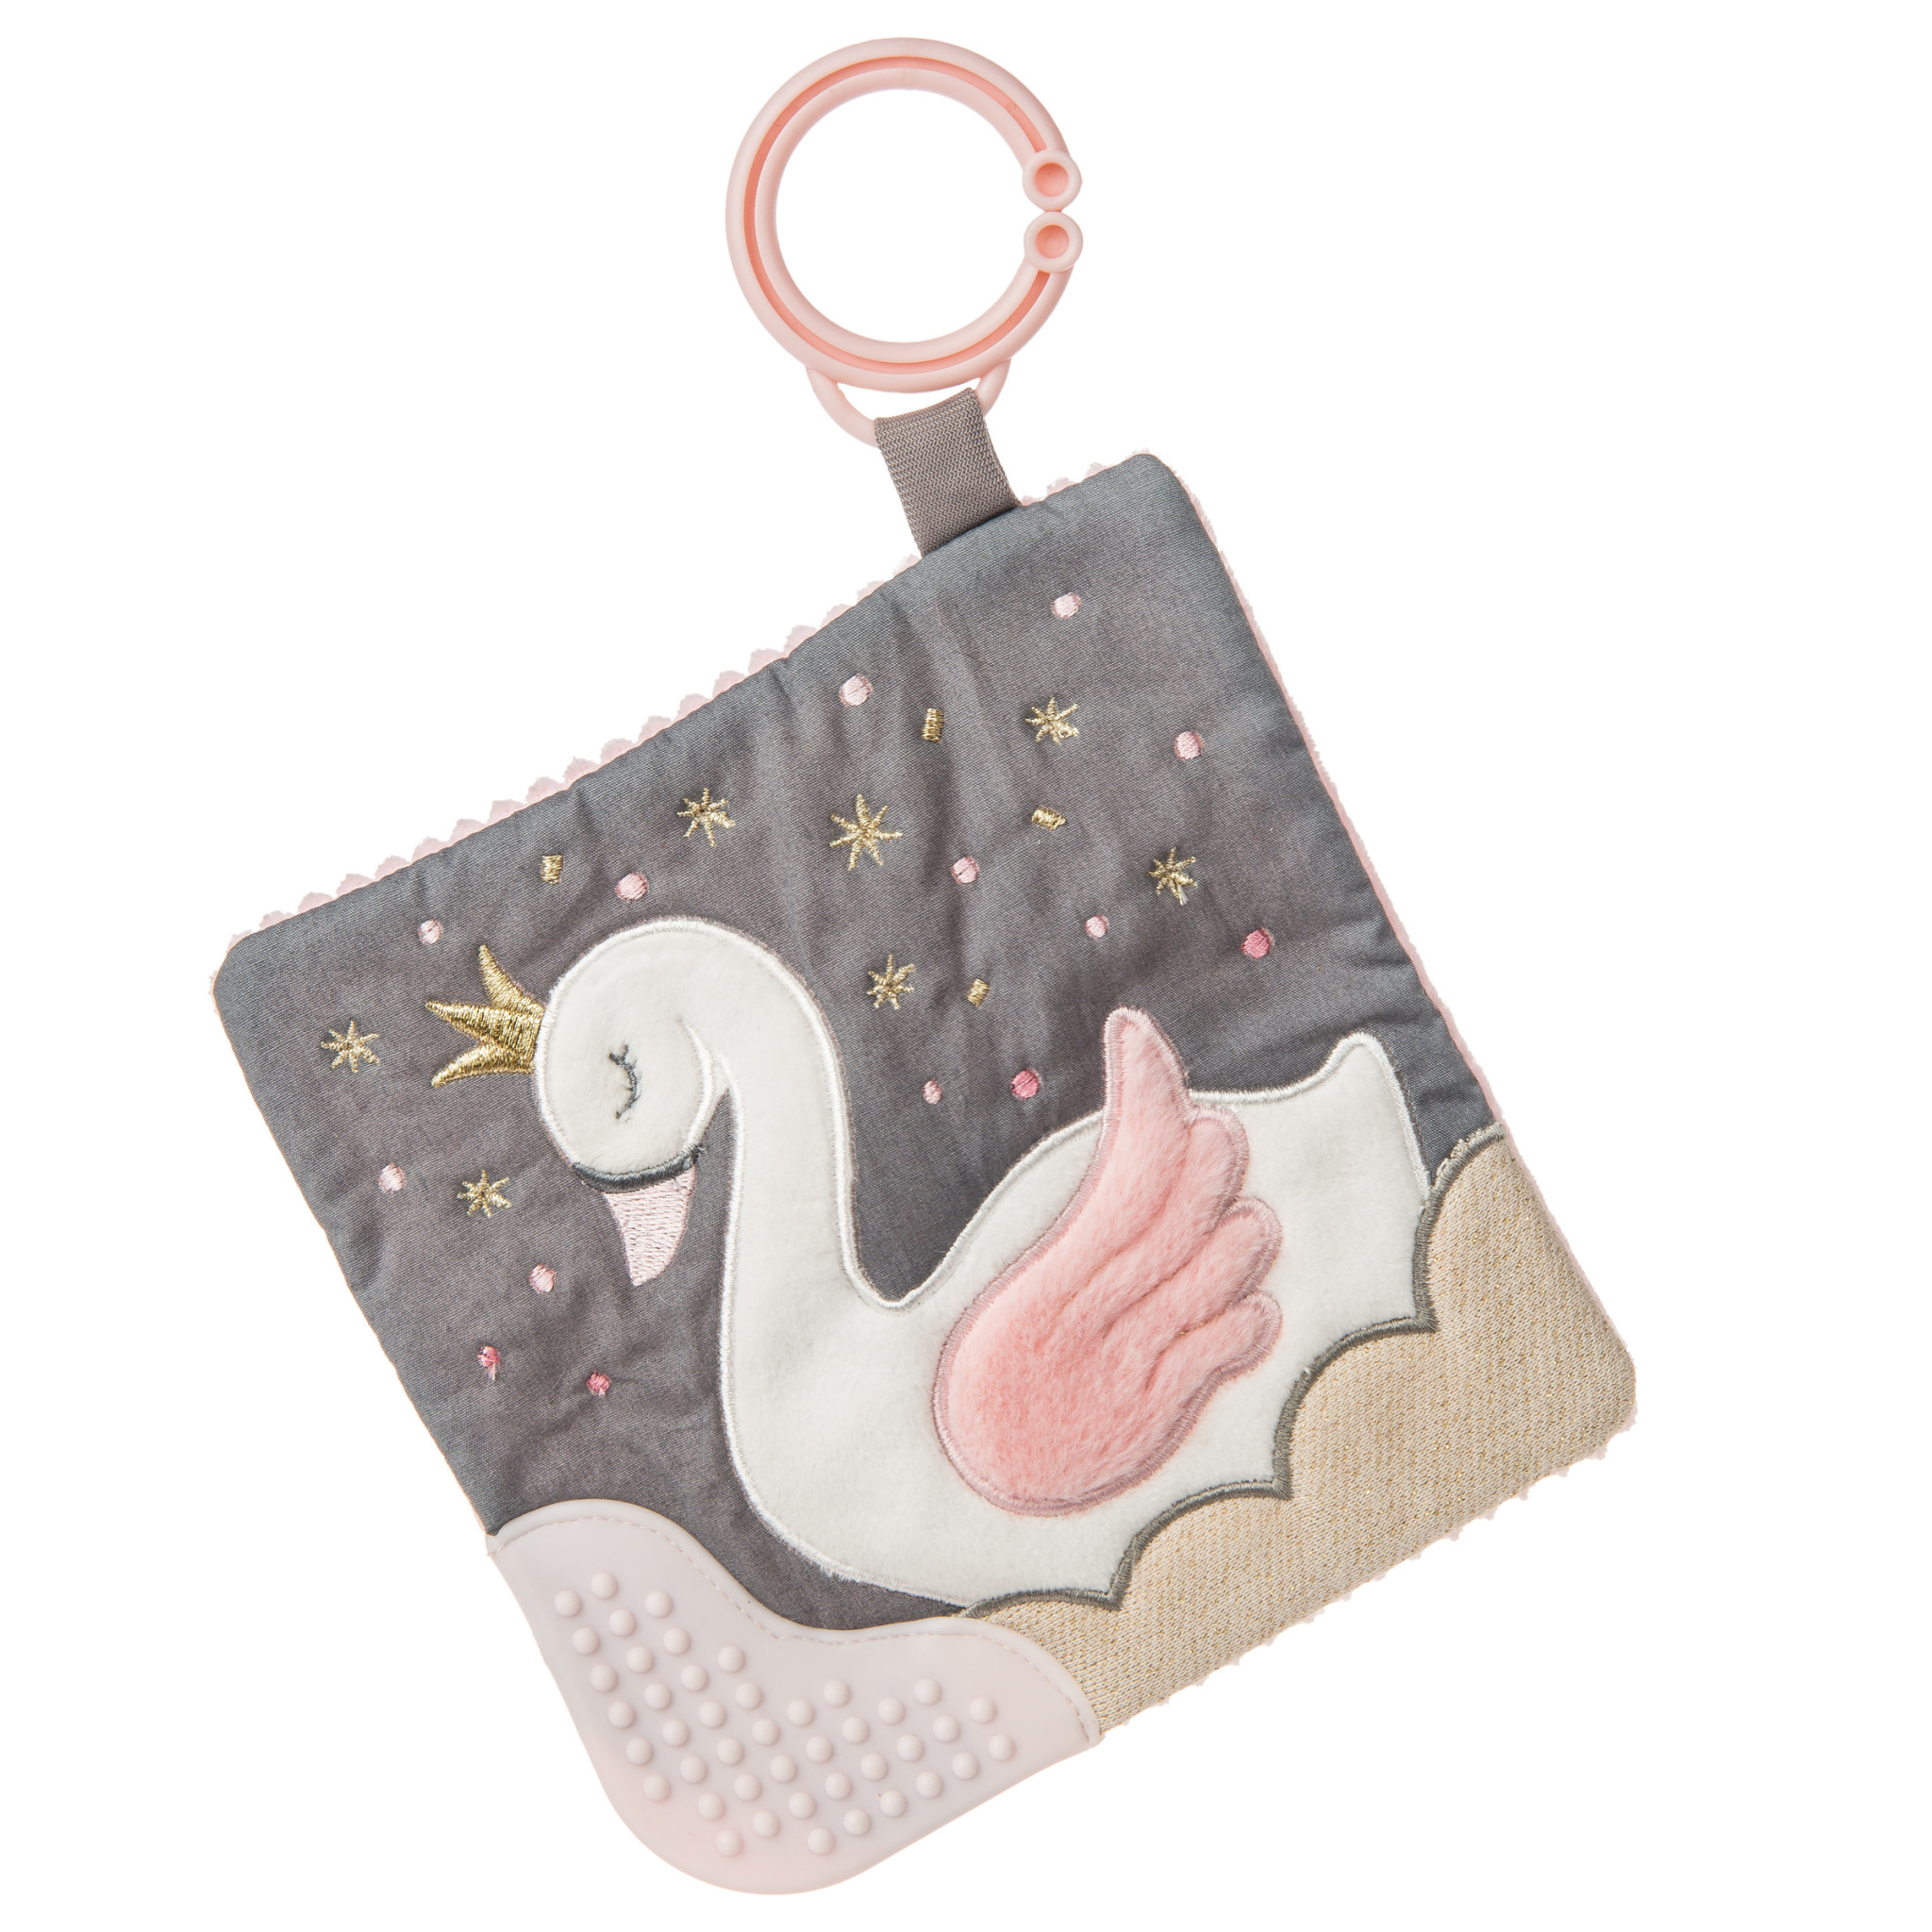 Mary Meyer Crinkle Teether, Itzy Glitzy Swan